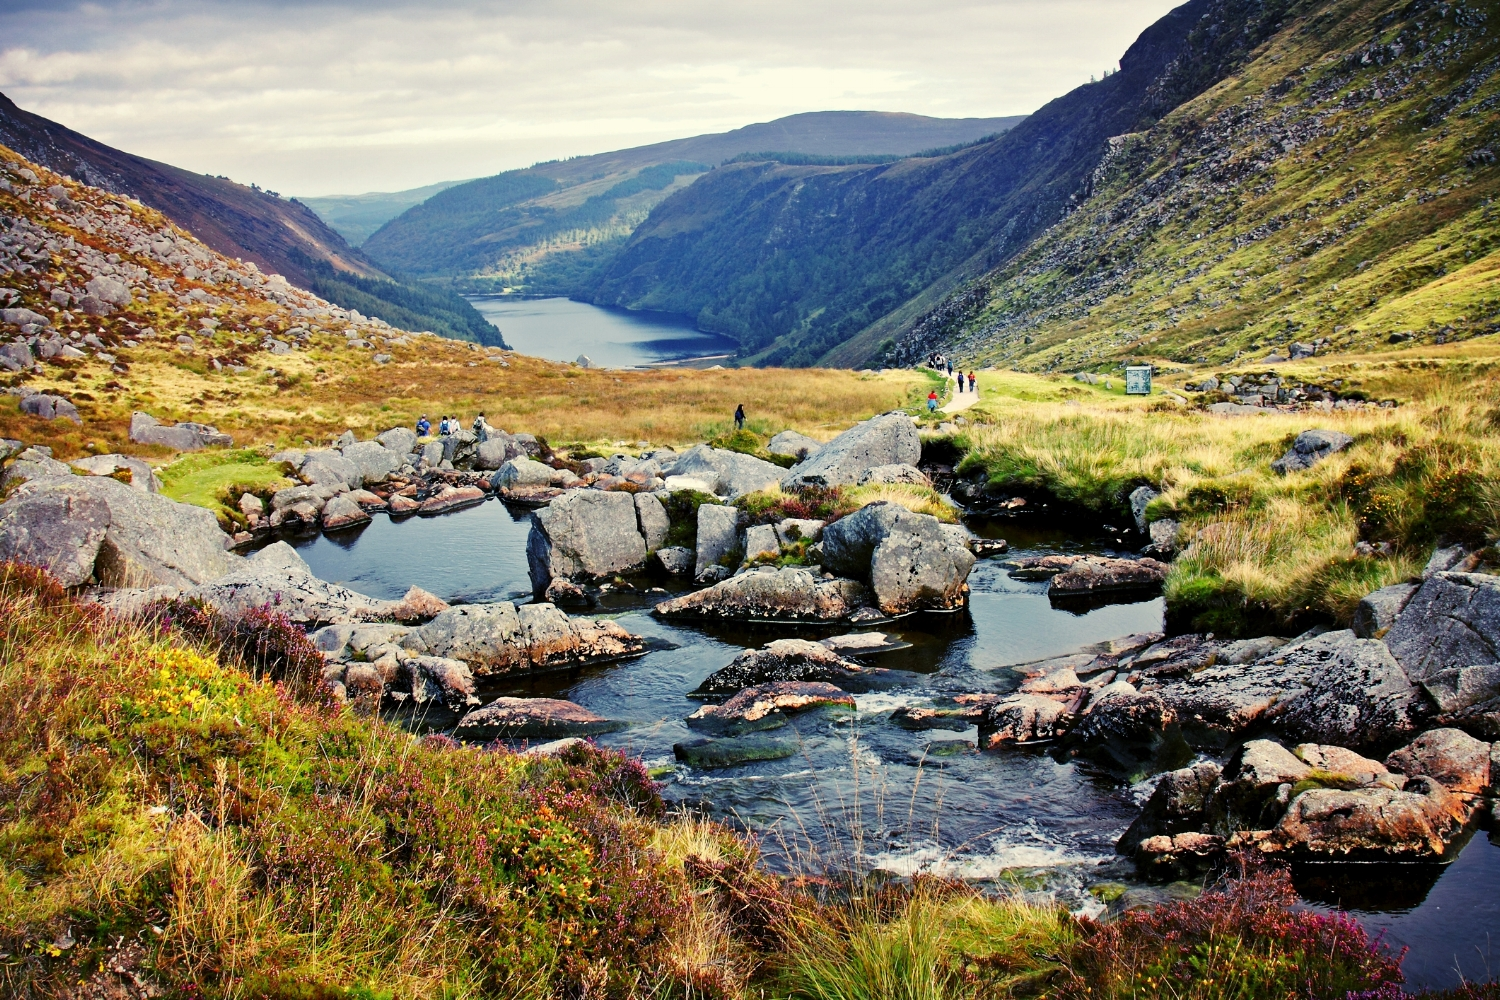 Hiking Options - Glendalough Lake Walk, County Wicklow